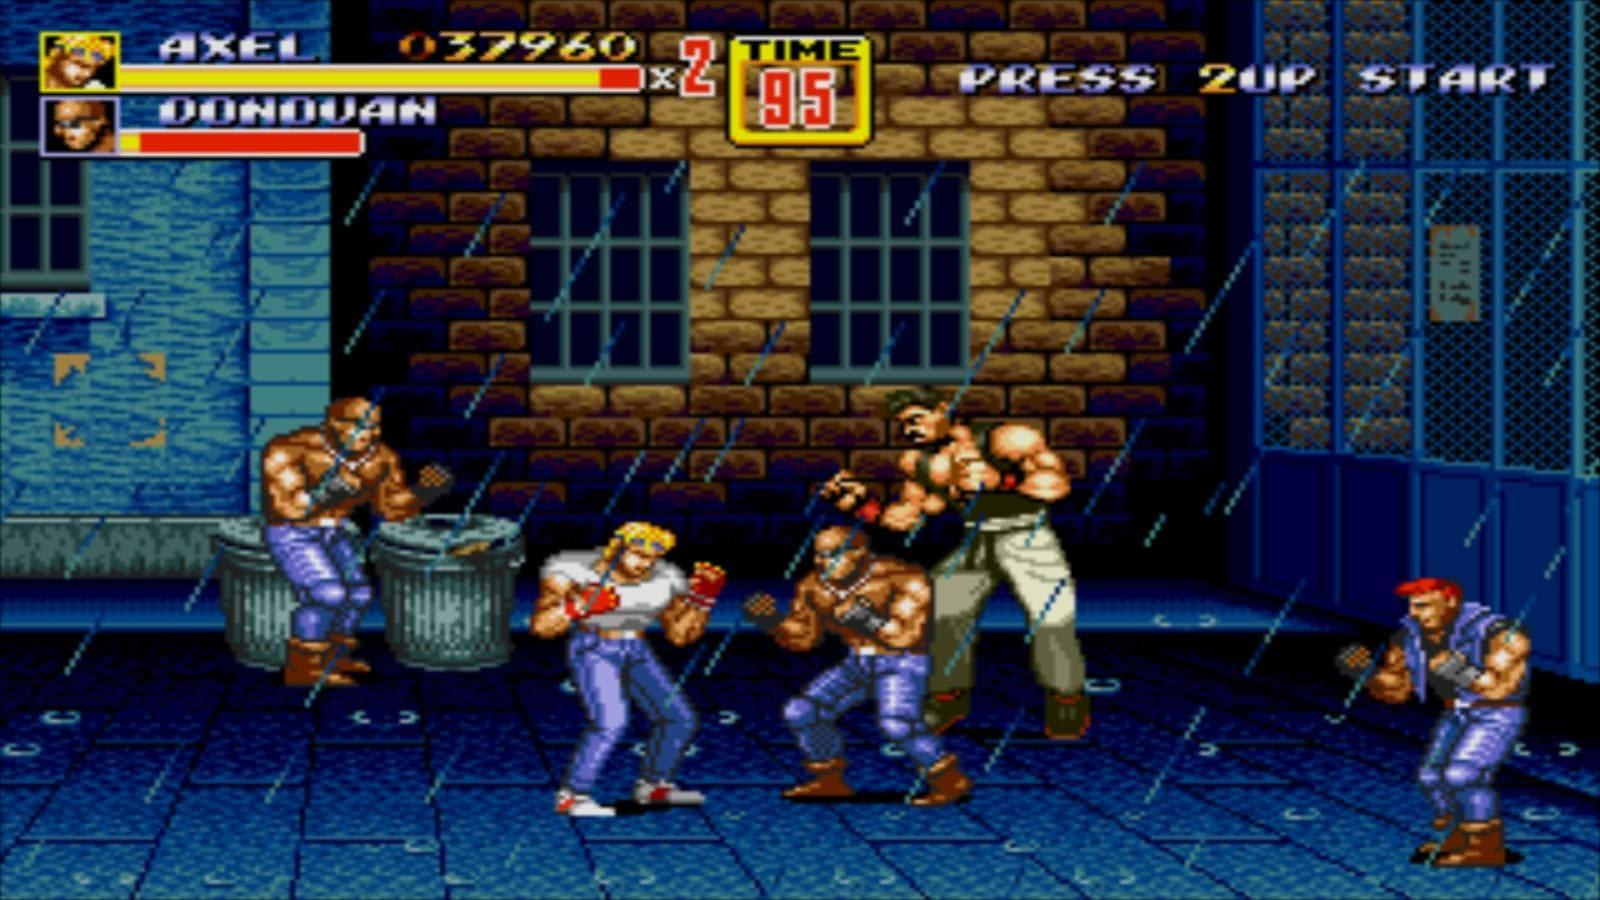 Sega Adds Streets Of Rage 2 And More To The Genesis Mini Lineup